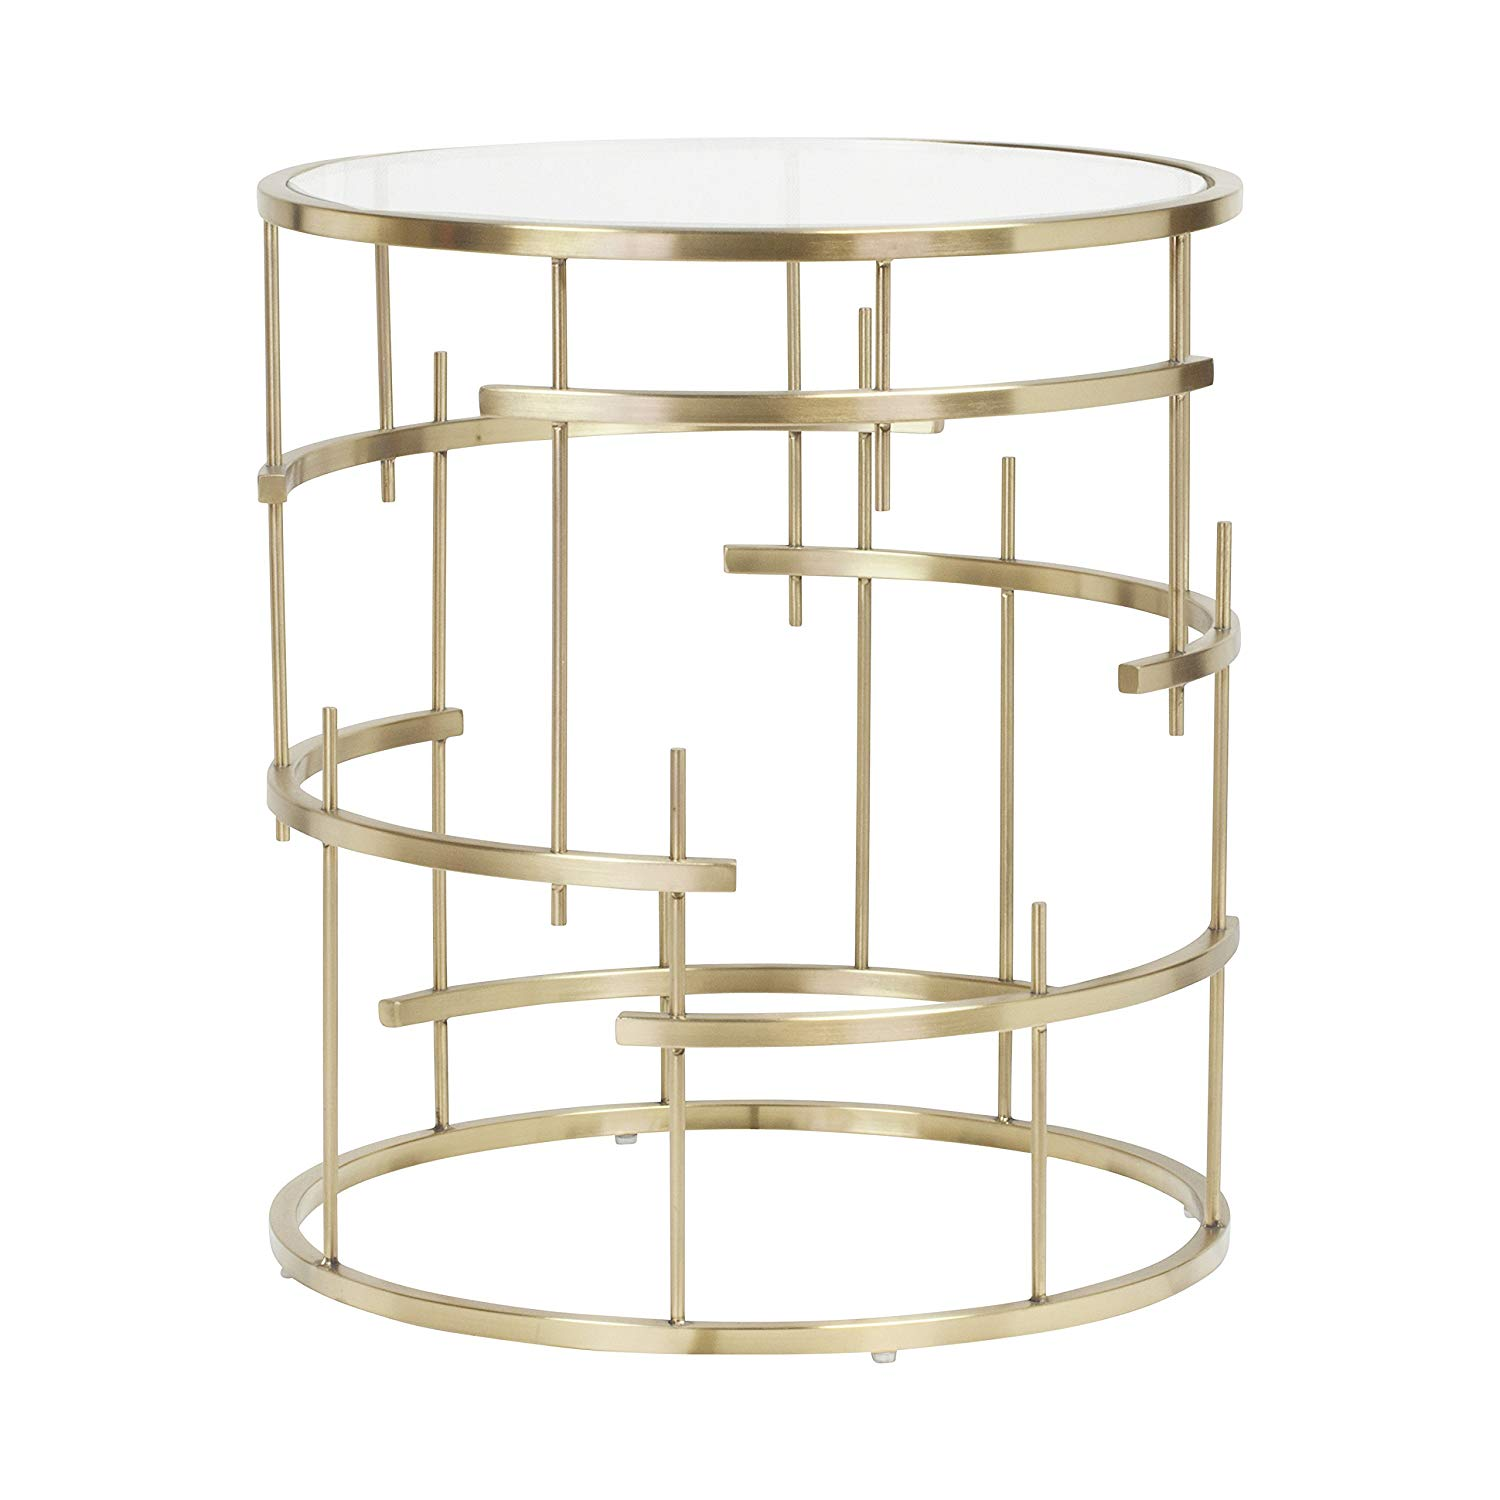 design tree home esme end table brushed gold and glass accent top kitchen dining chrome side unique ceiling light ginger jar lamps outdoor shoe storage small bench round metal